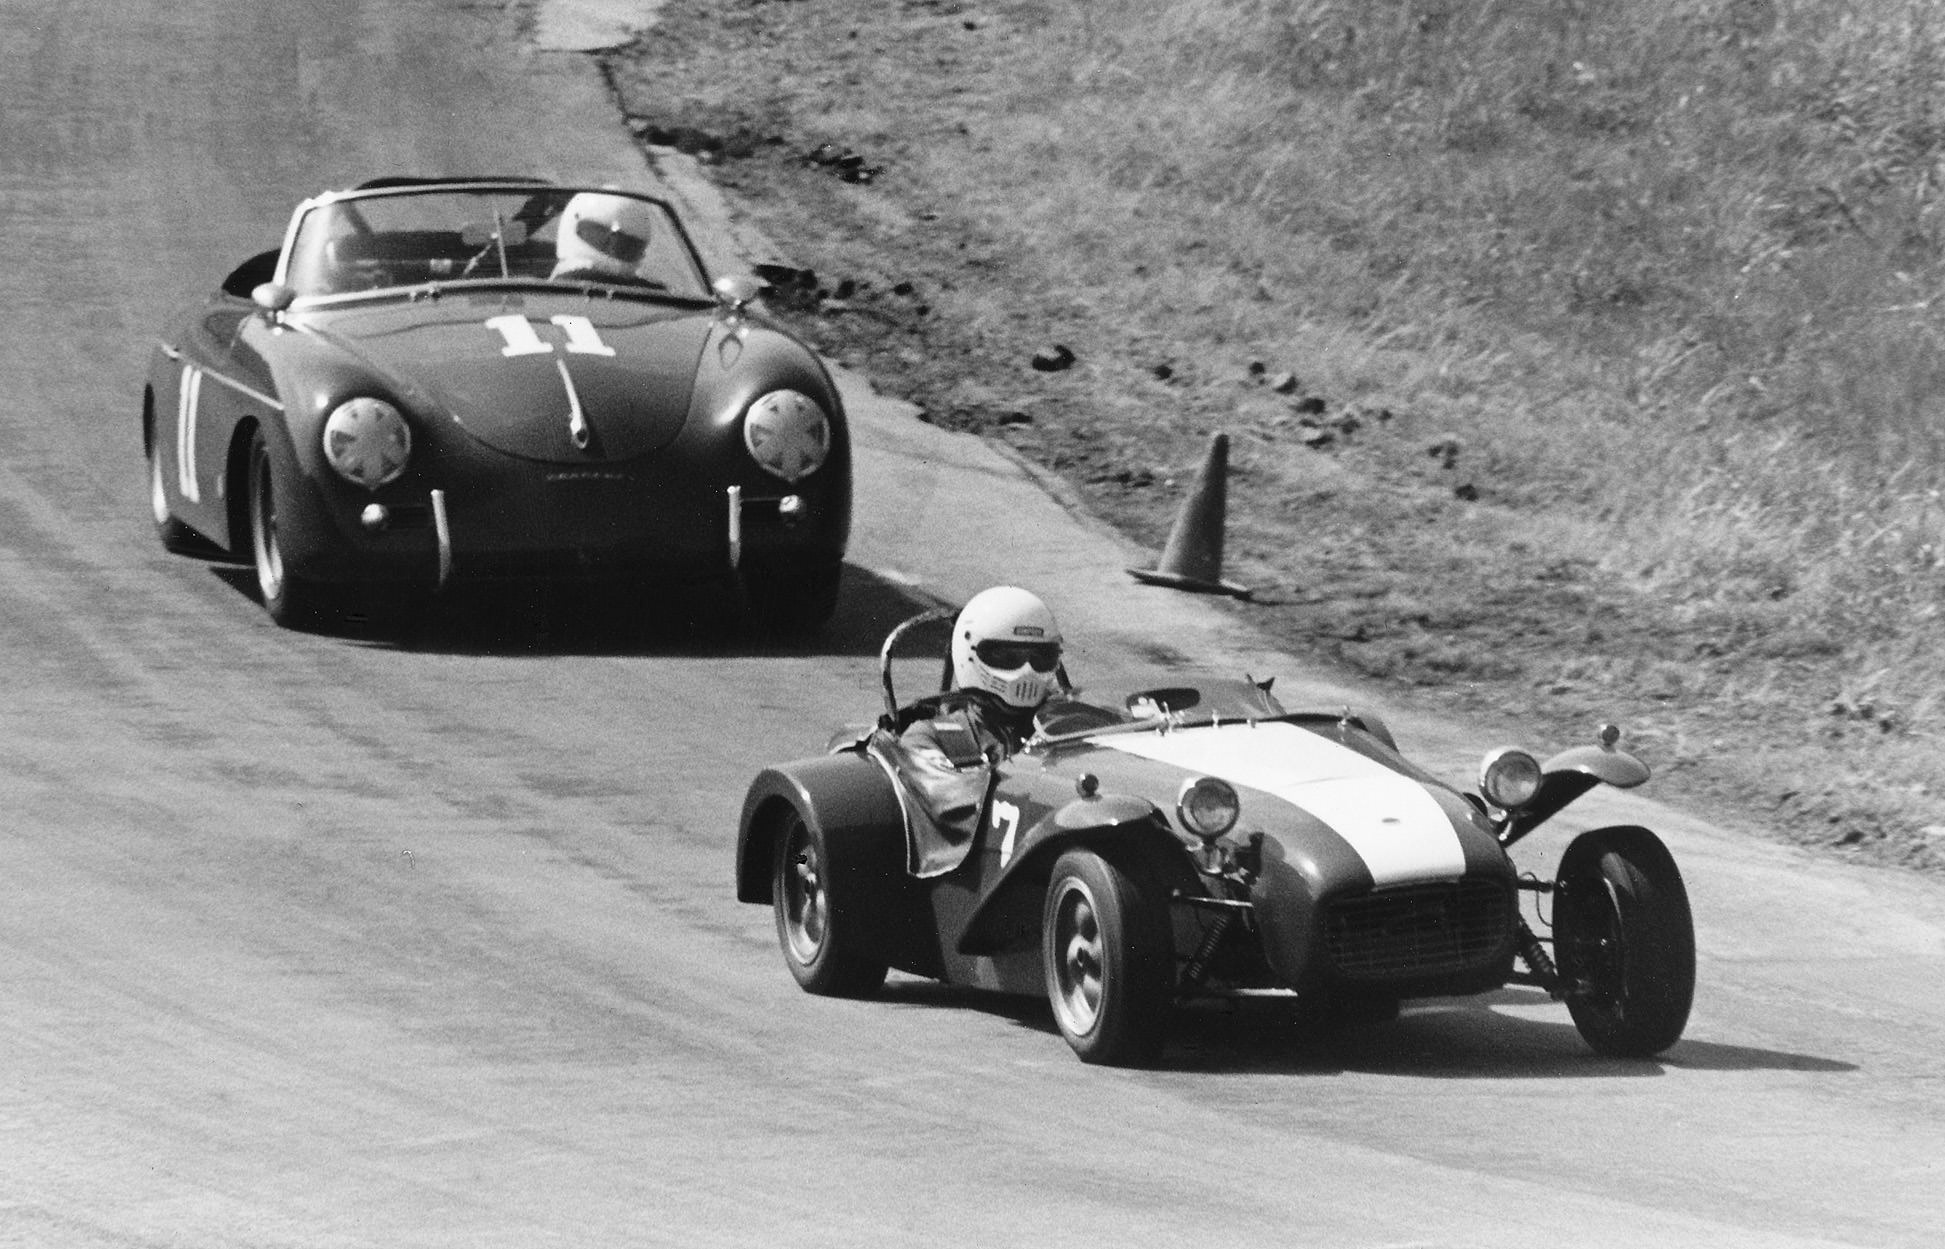 A Brief History From The Lotus 7 to The Caterham 7